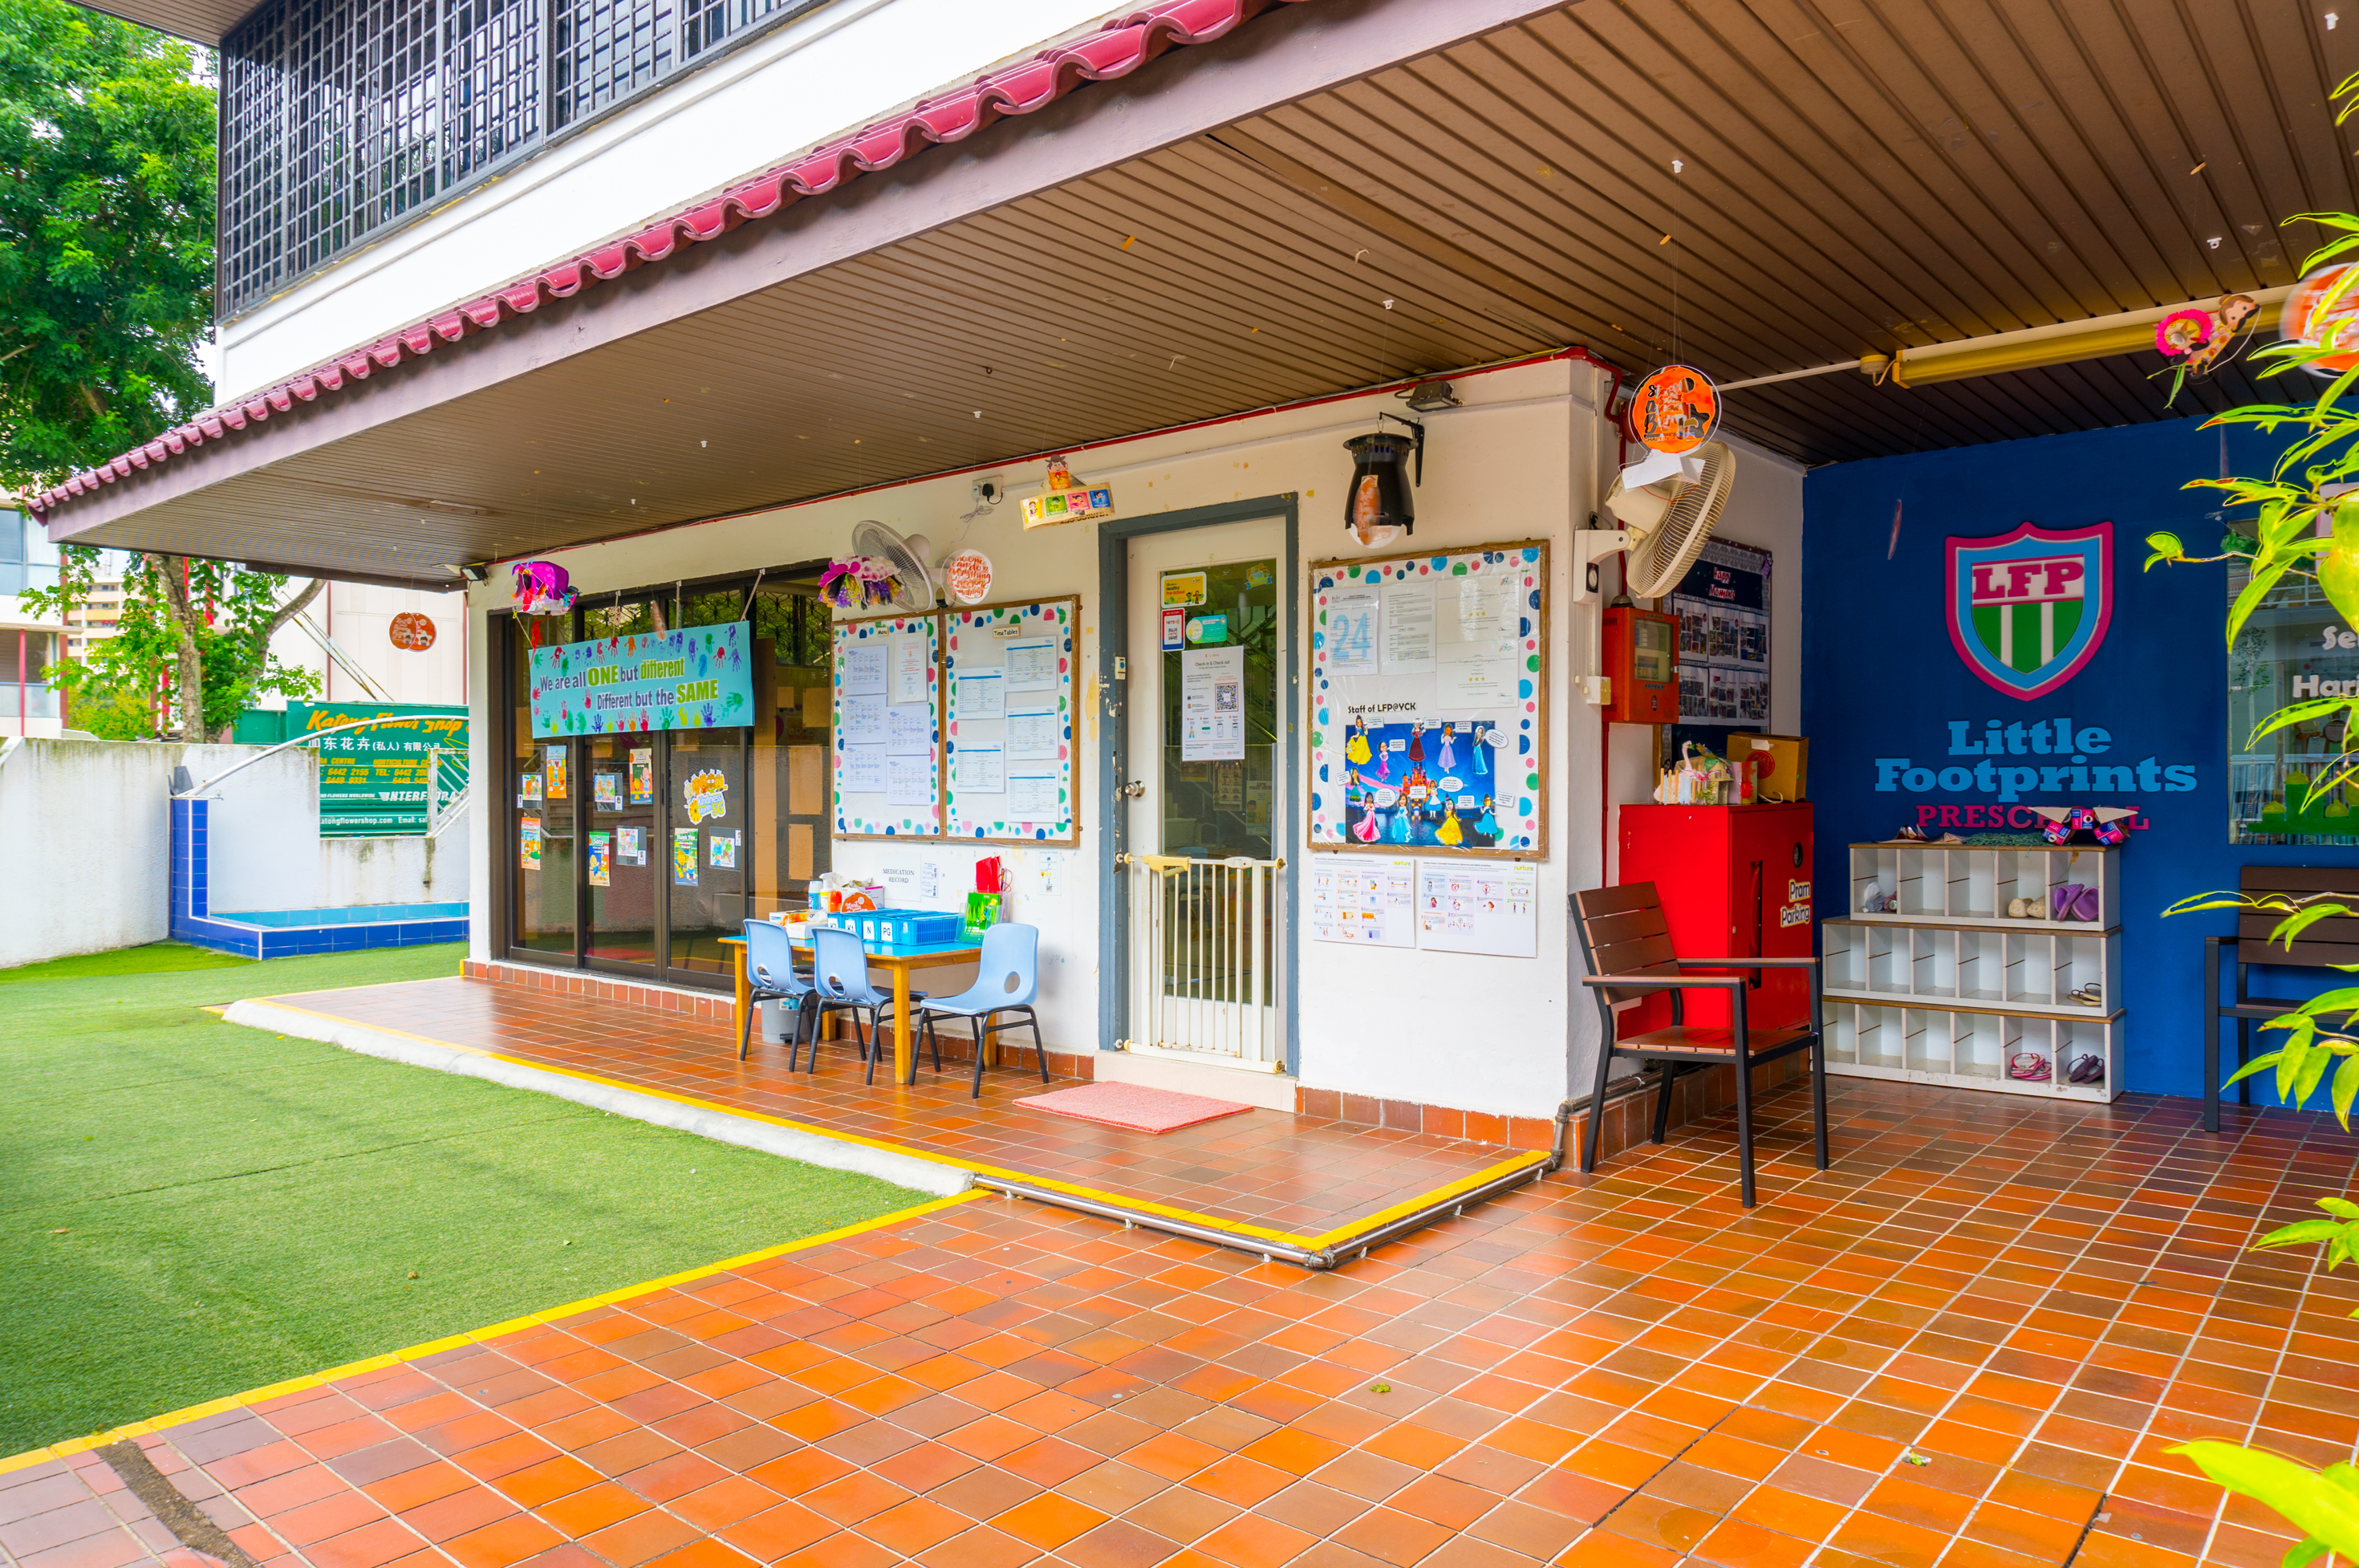 Little Footprints Preschool @ Yio Chu Kang